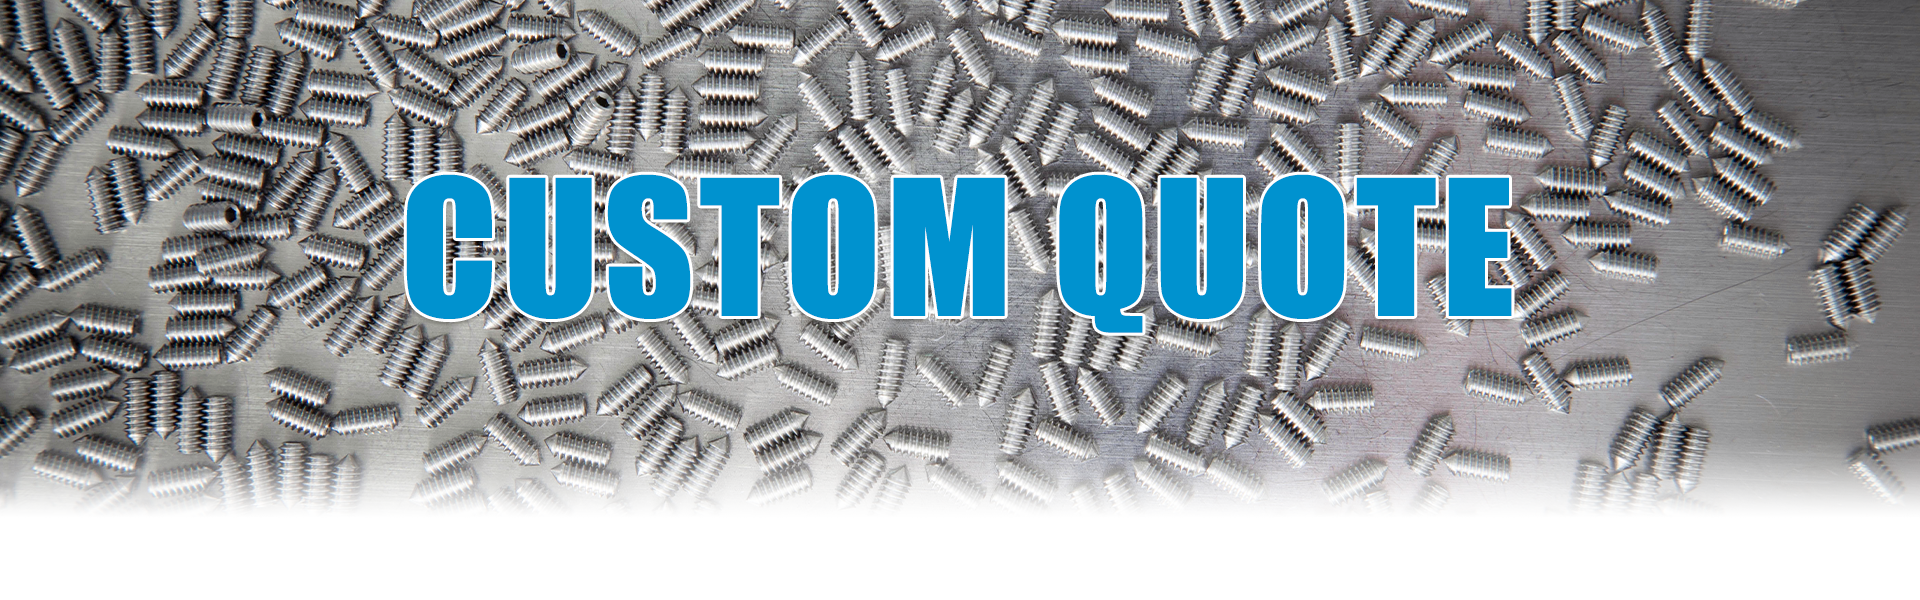 UC Components custom fastener and o-ring quote